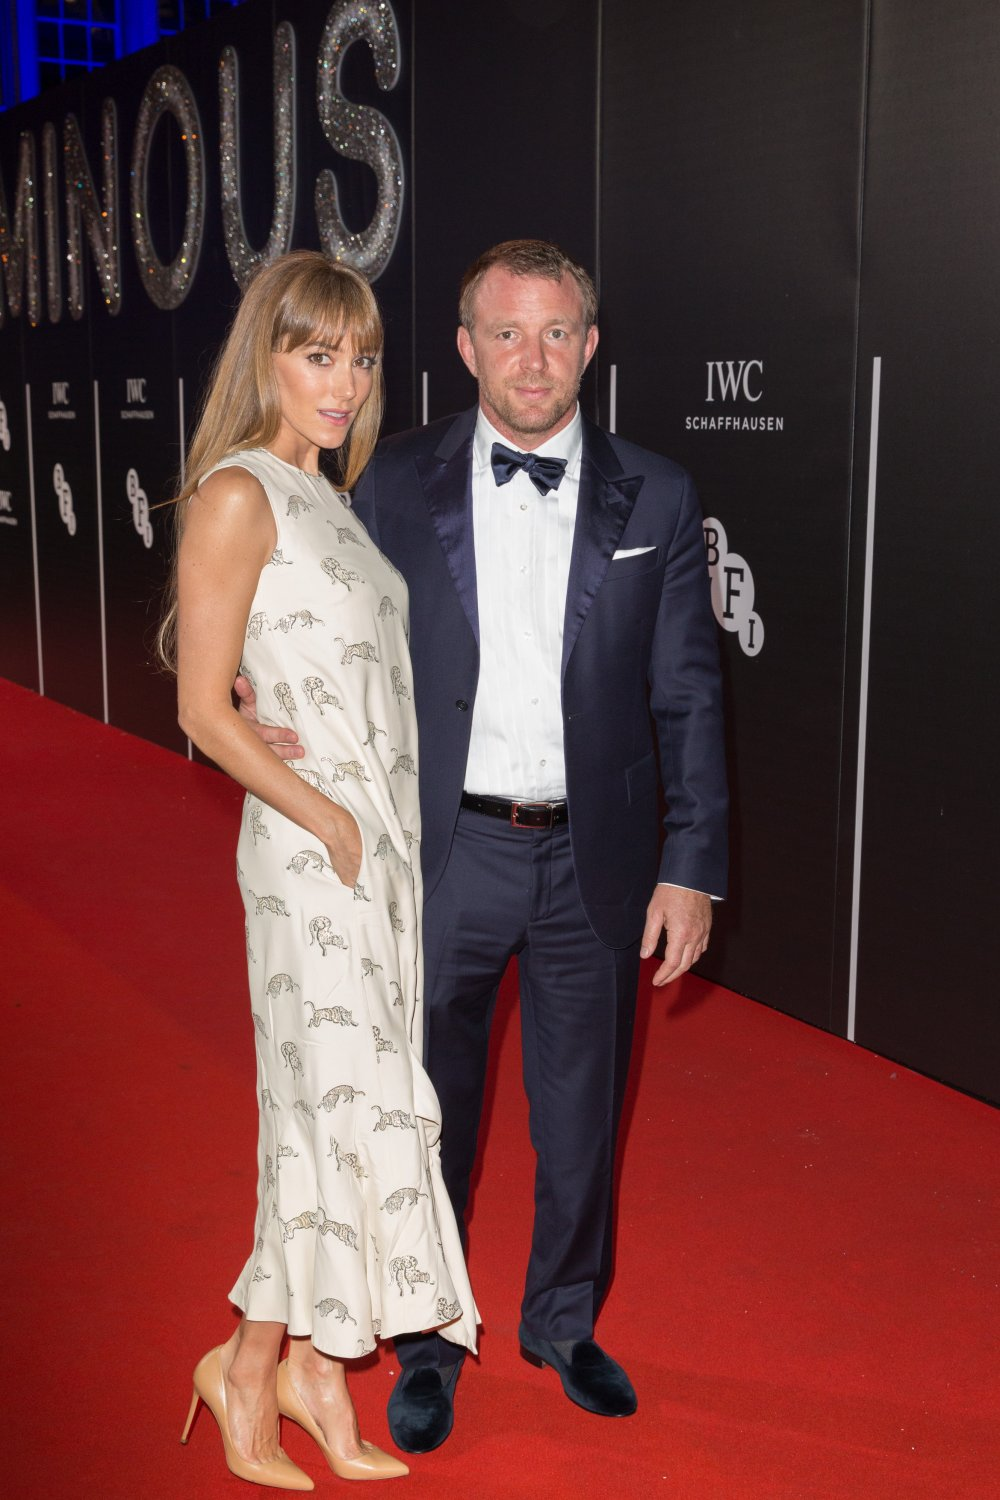 Guy Ritchie and Jacqui Ainsley attends the BFI LUMINOUS gala 2015